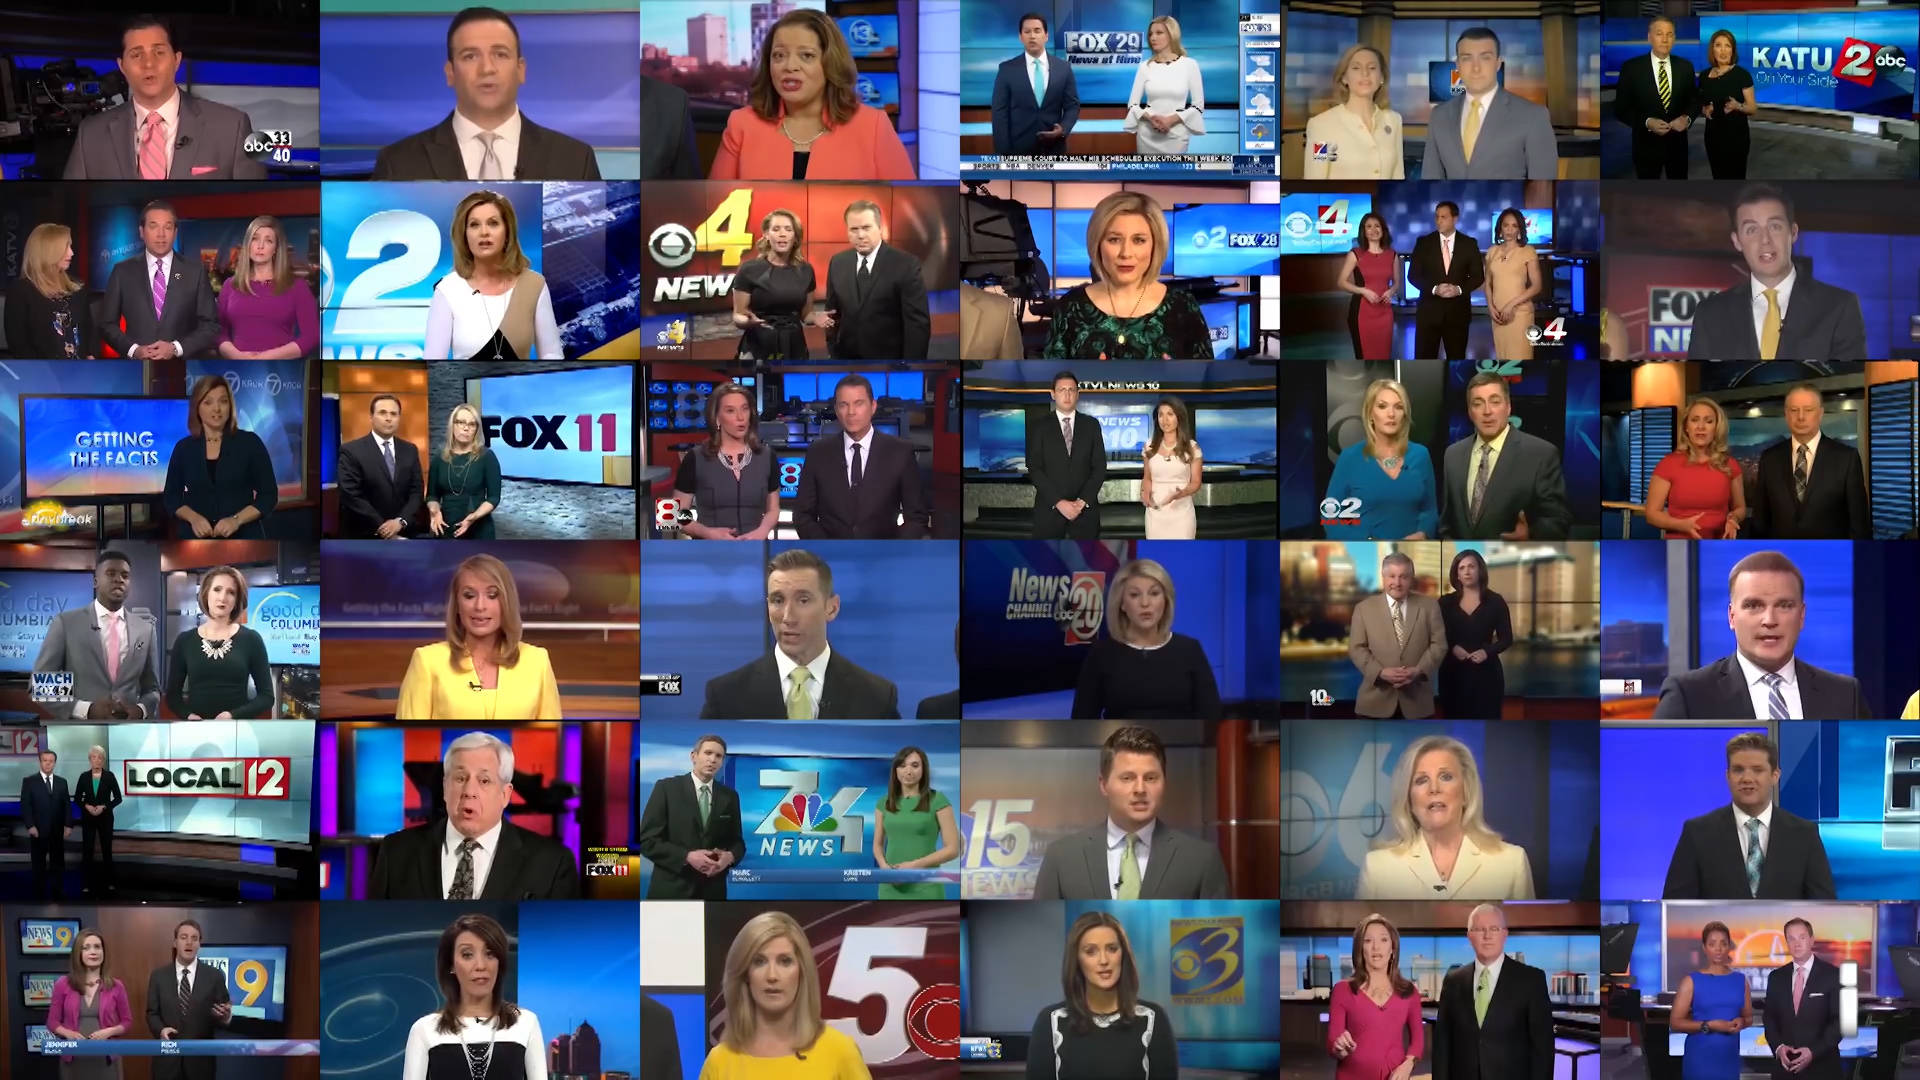 Media Giant Sinclair, Under Fire for Forcing Anchors to Read